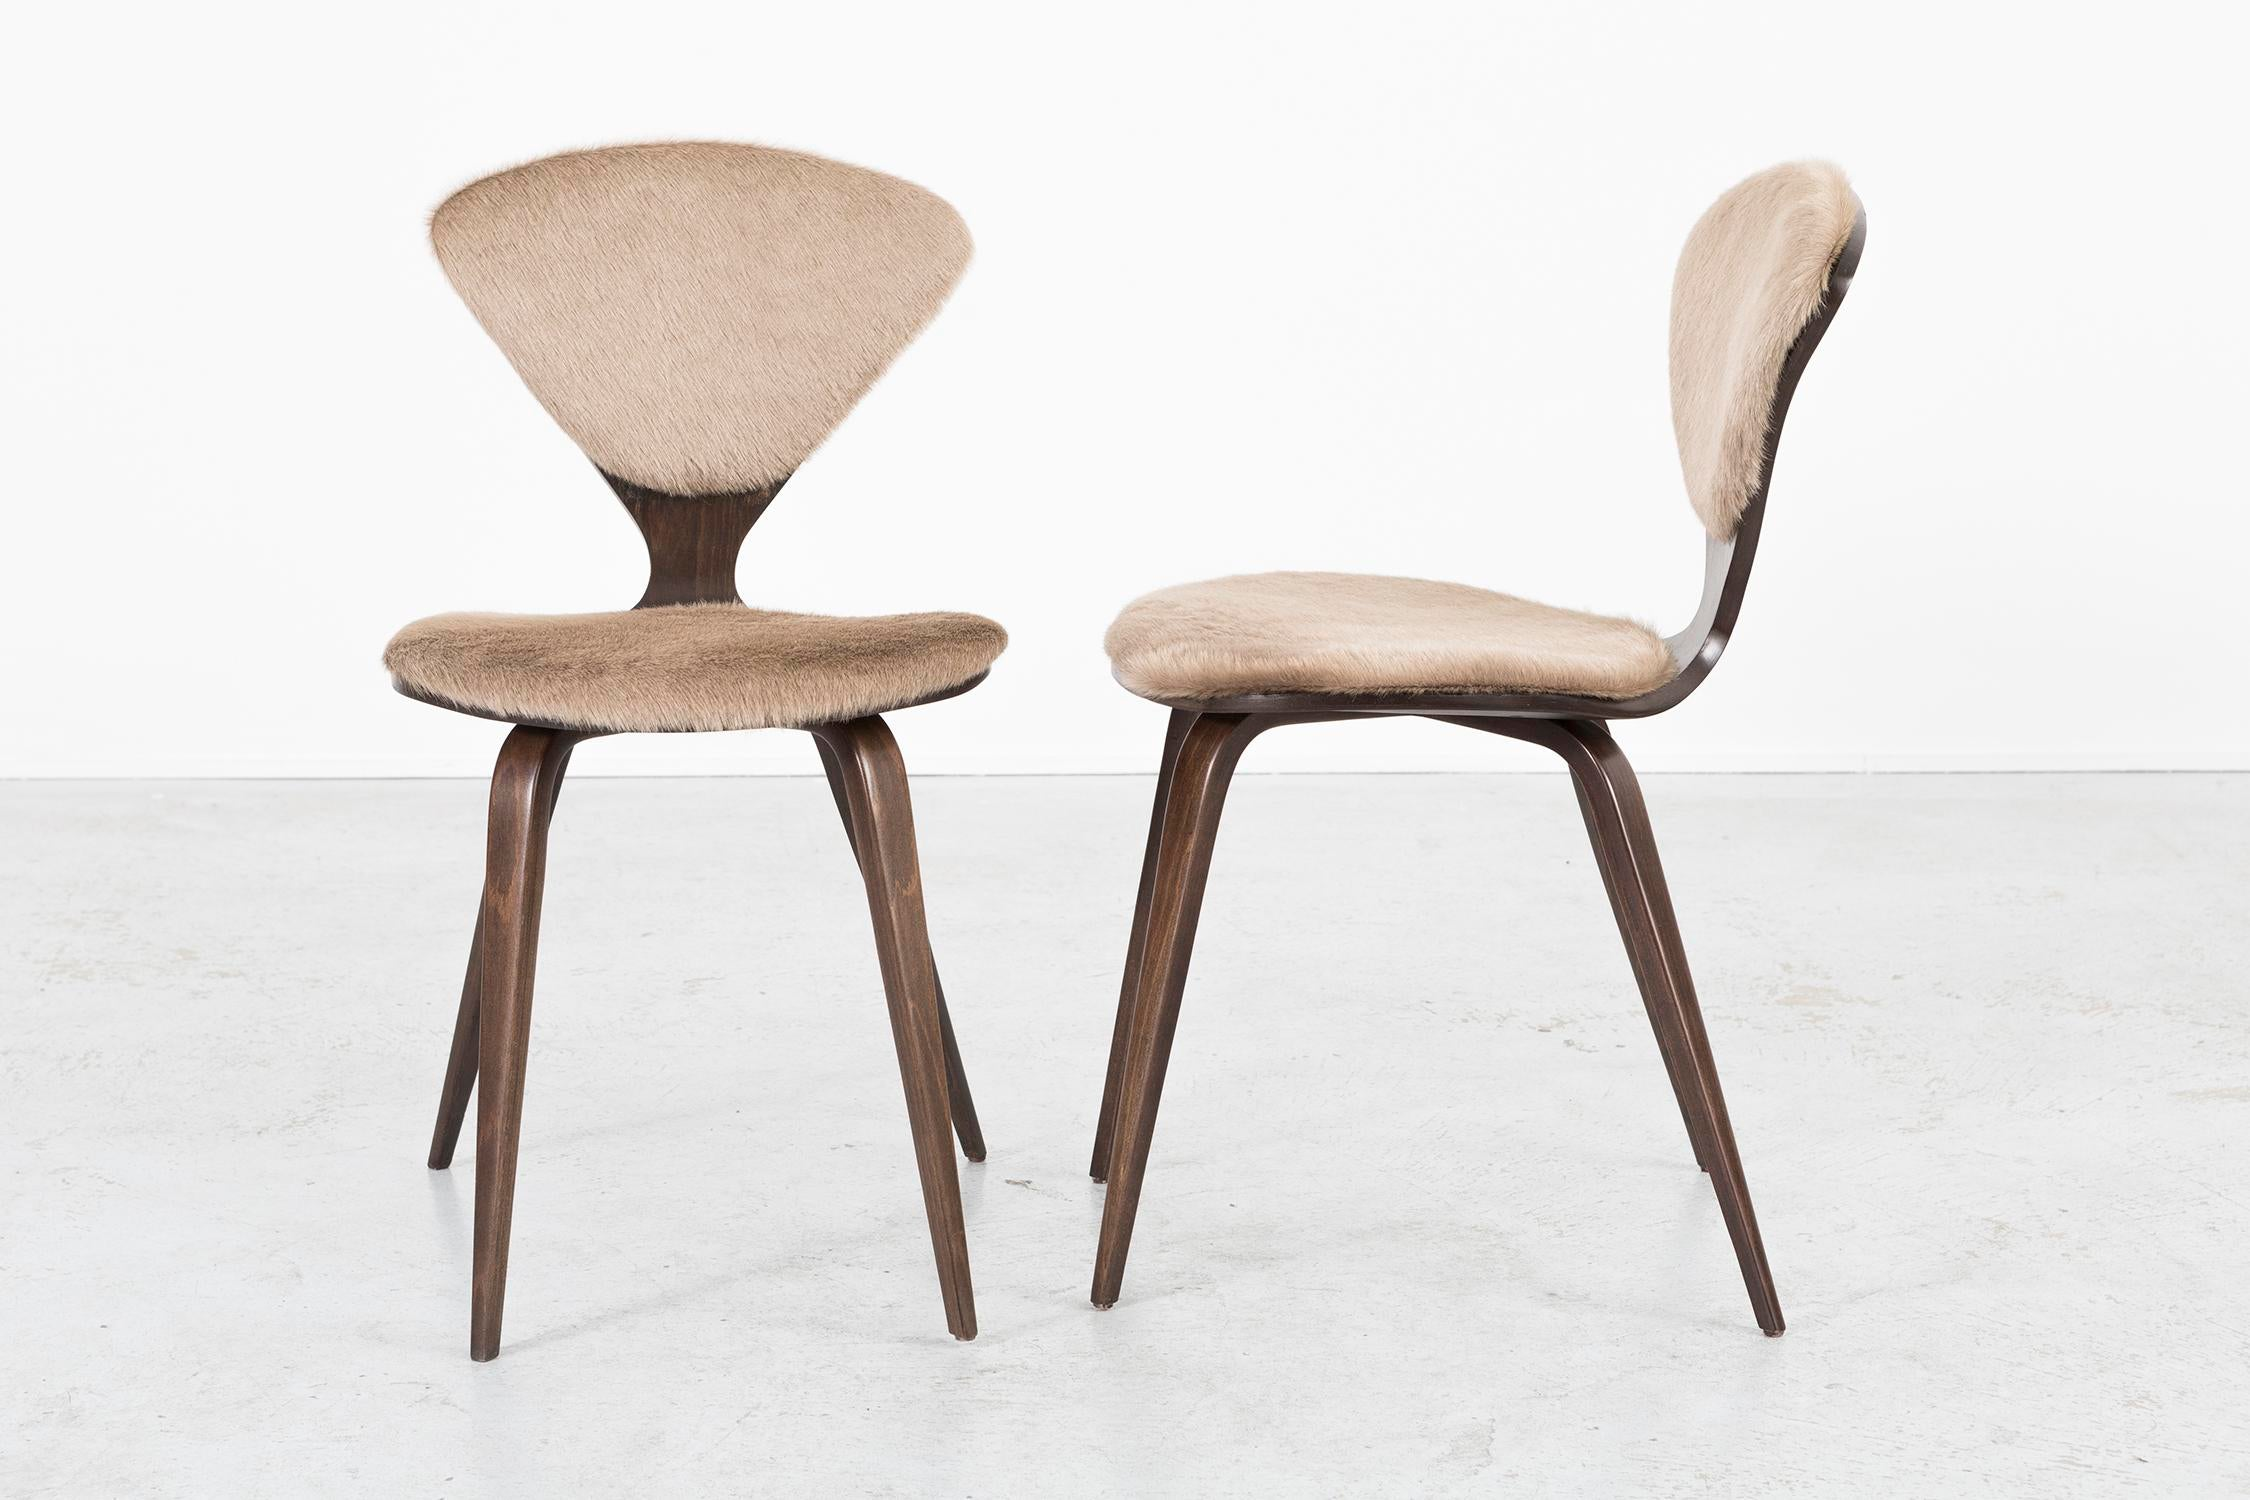 Plycraft Set Of Norman Cherner For Plycraft Dining Chairs For Sale   Image  4 Of 11